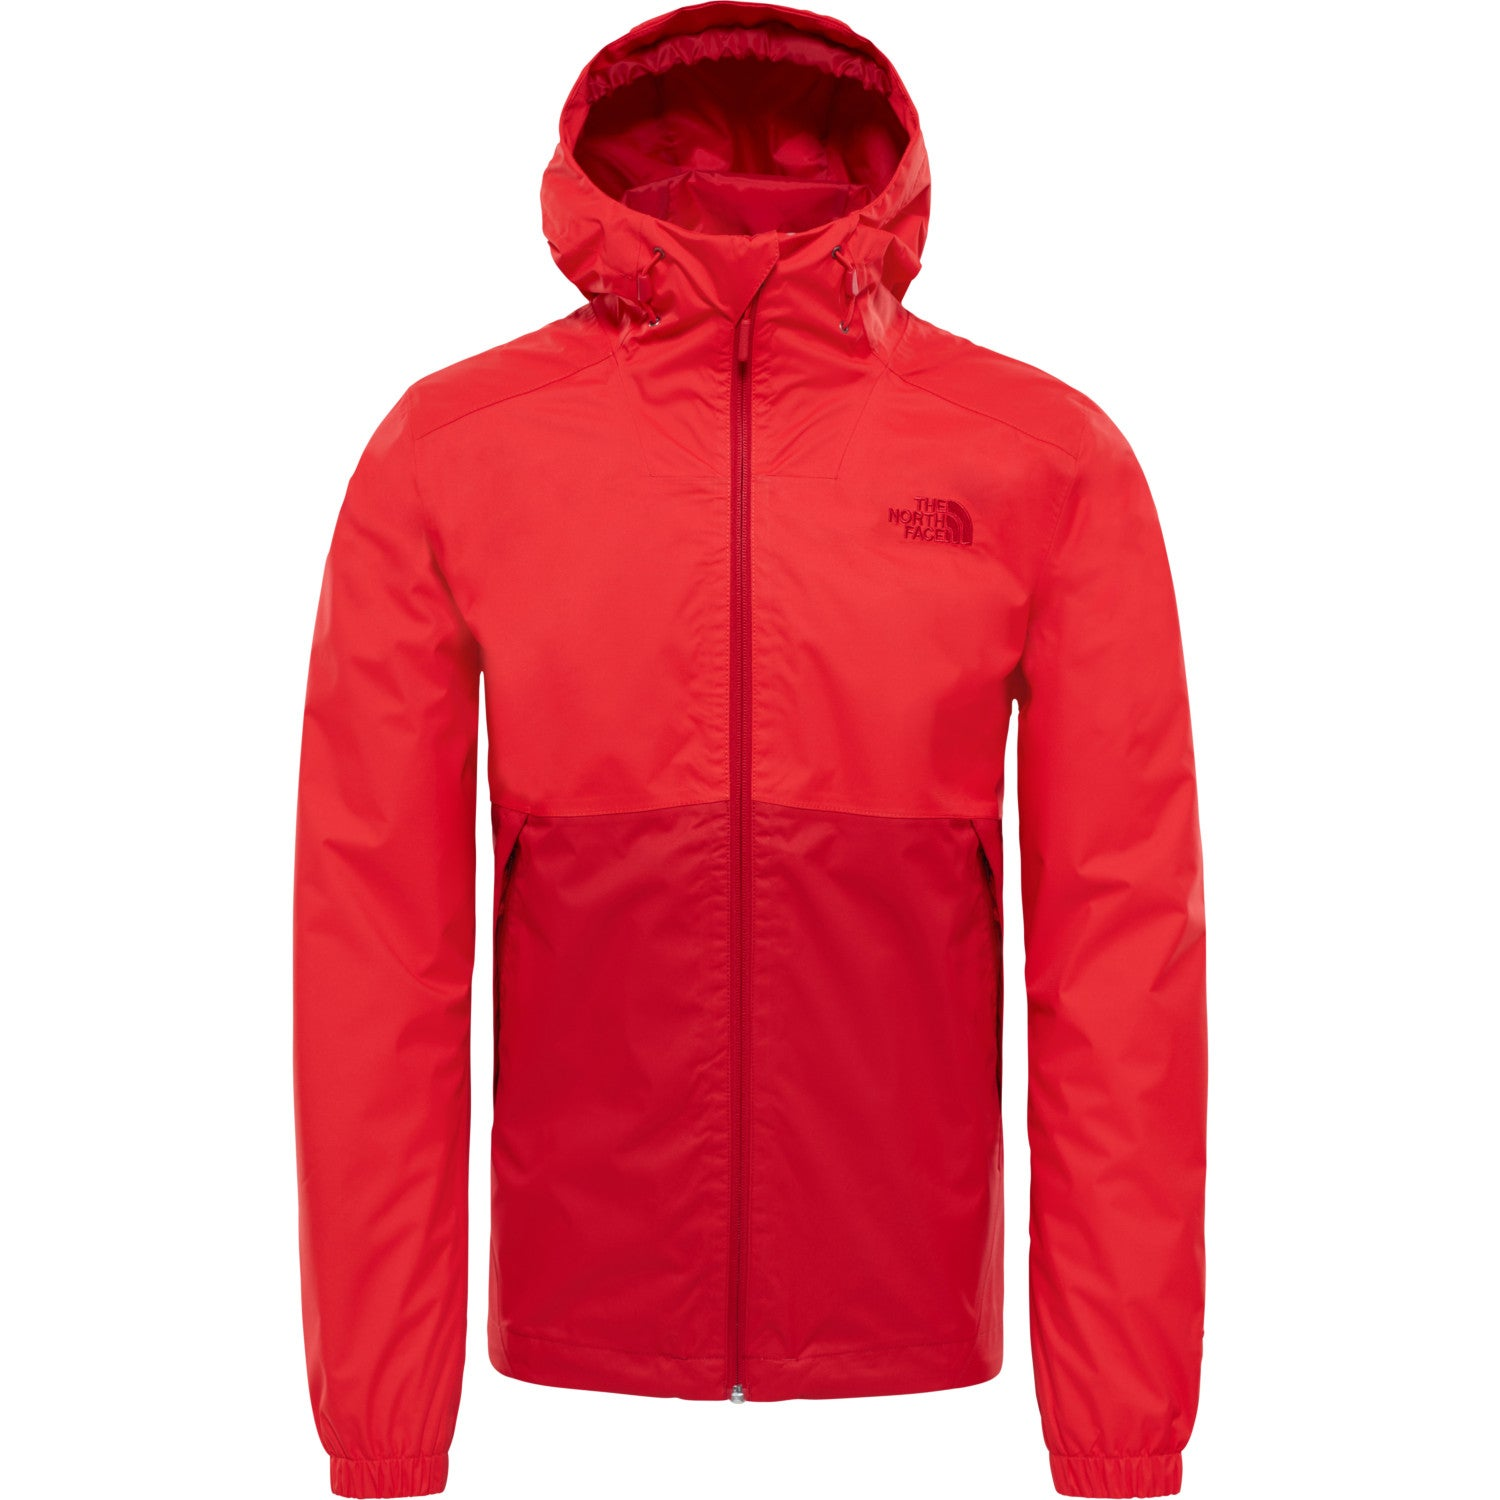 67274a1ba6 ... the north face canada north face millerton mens jacket high risk red  rage red e747a 71228 ...